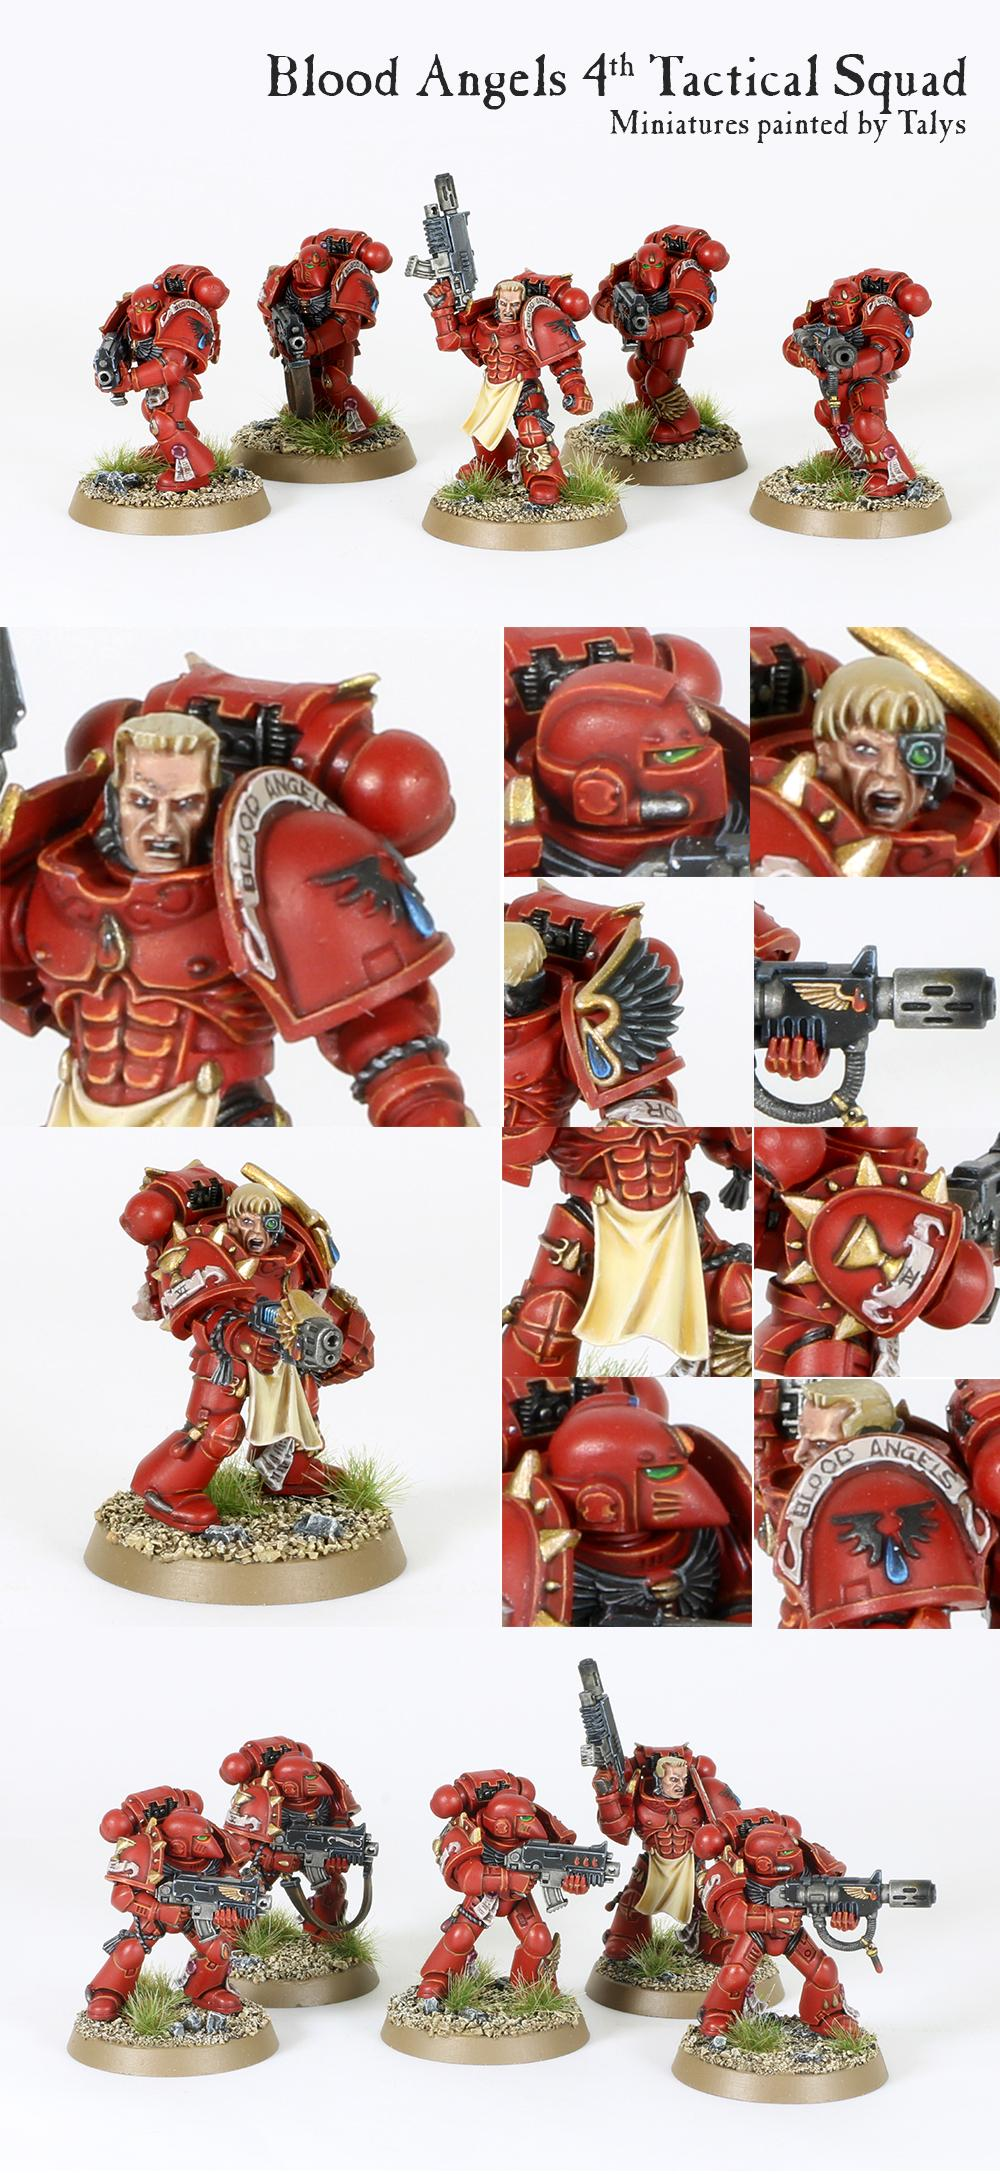 Blood Angels, Bolter, Meltagun, Power Armour, Space Marines, Tactical, Warhammer 40,000